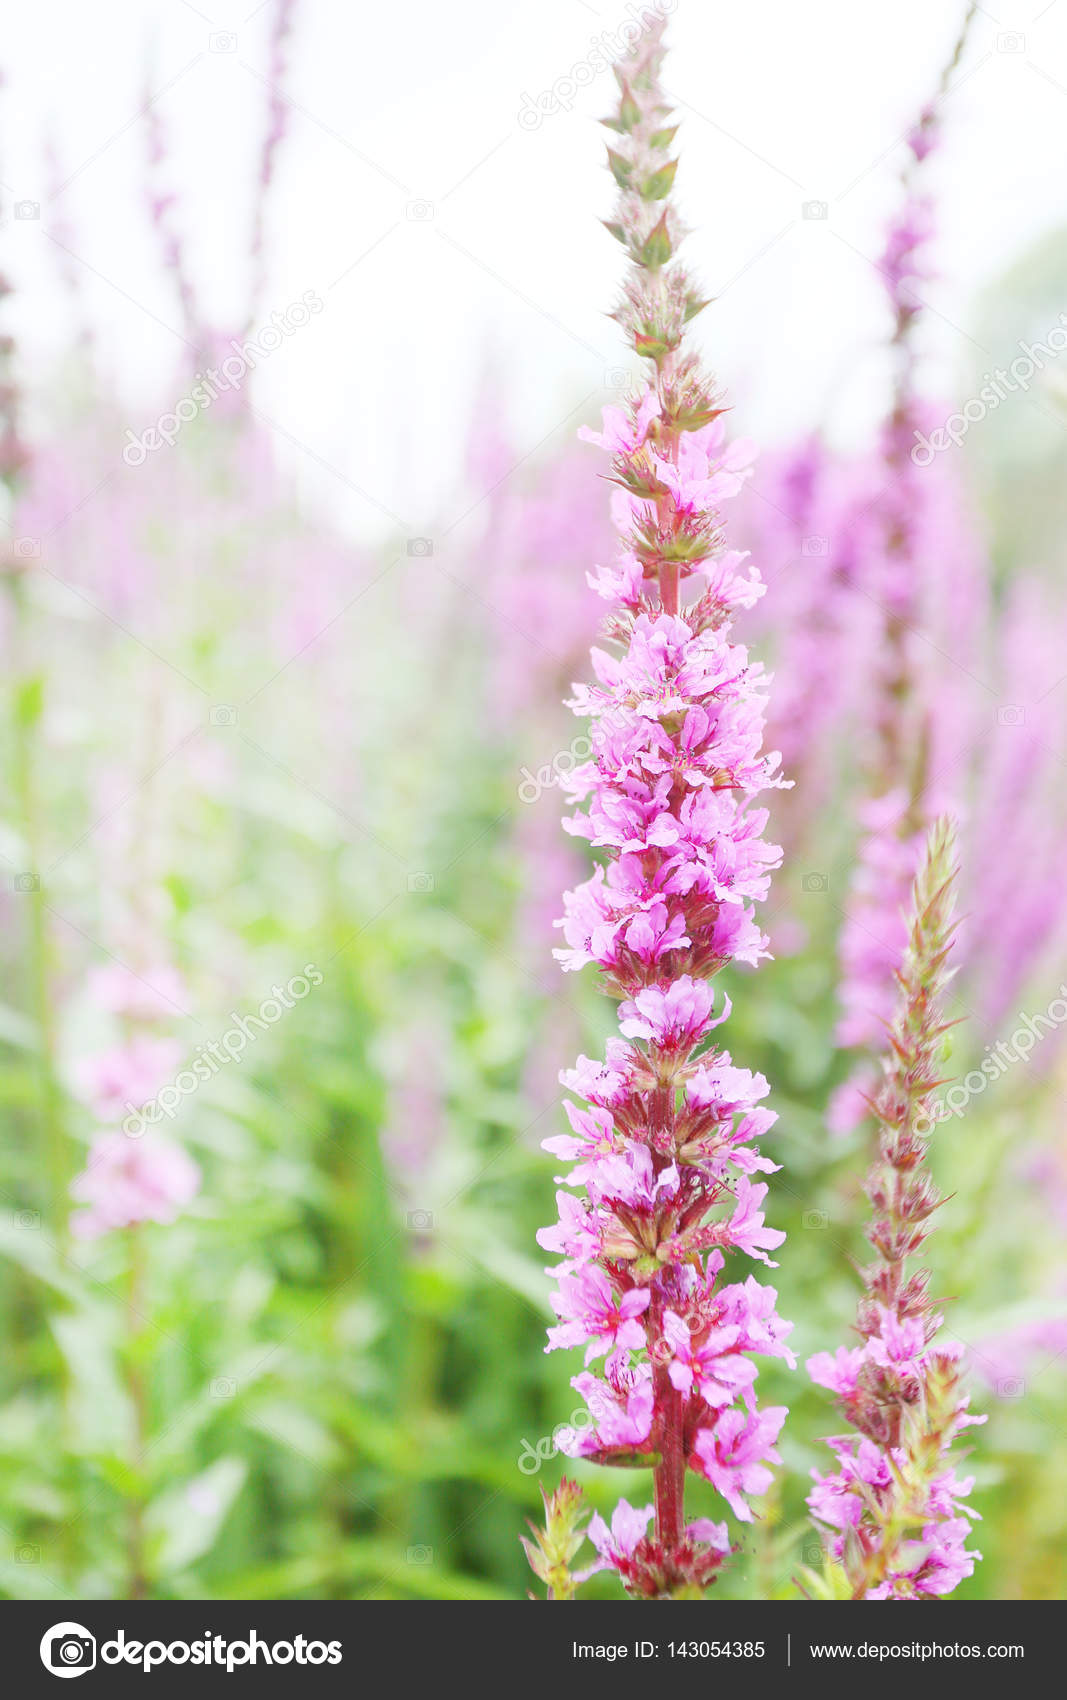 Tall pink flower with many buds similar to foxglove stock photo tall pink flower with many buds similar to foxglove stock photo mightylinksfo